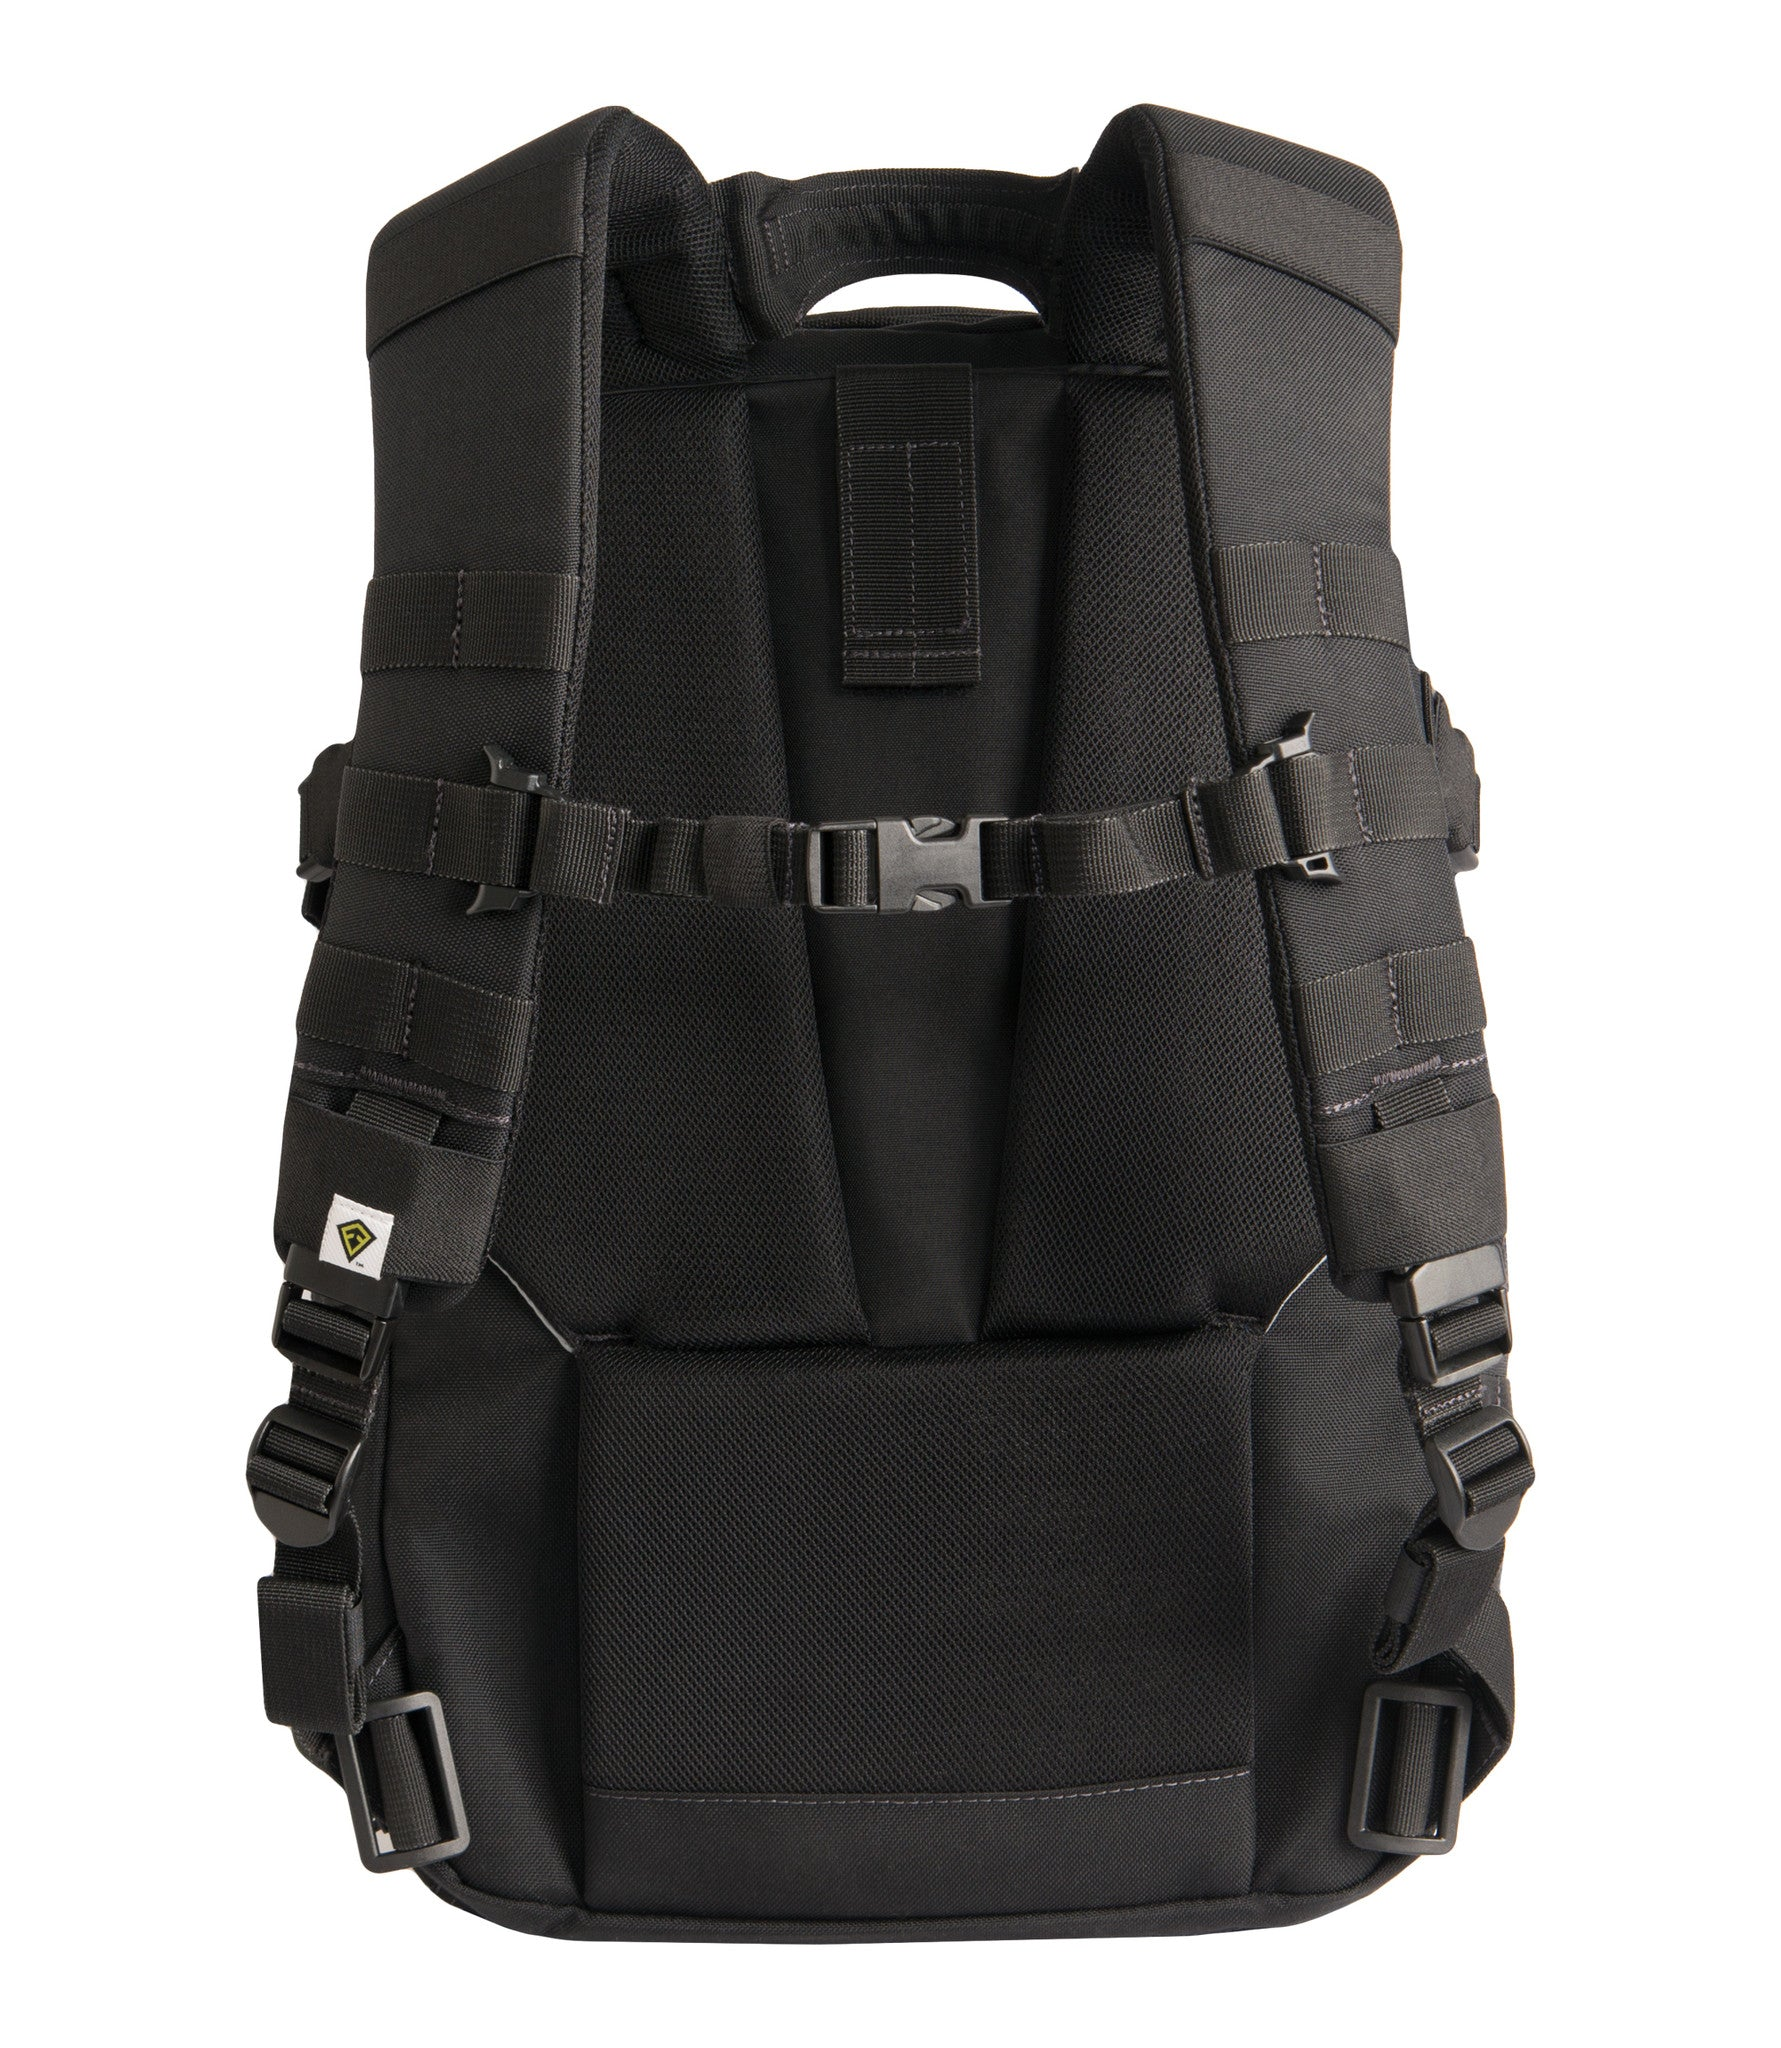 Specialist 1-Day Backpack  c12f1c82475f5